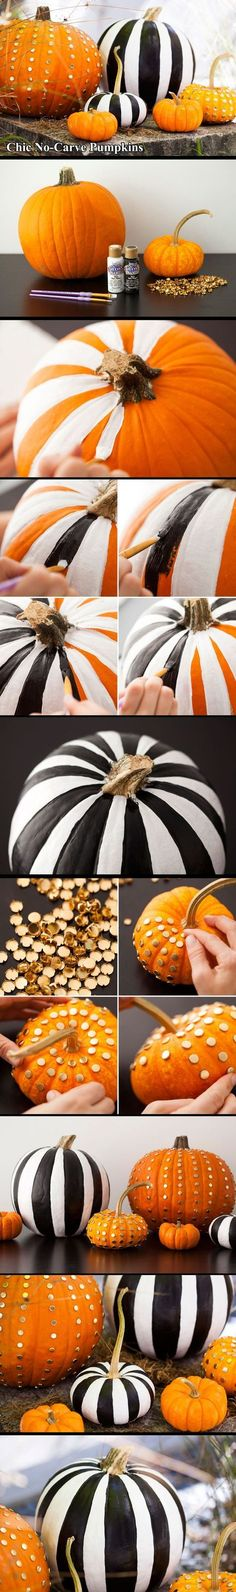 DIY: 2 Ways to Make Chic No-Carve Pumpkins via Brit + Co. Halloween with Tim Burton ~~ Halloween Party Decorations & Ideas